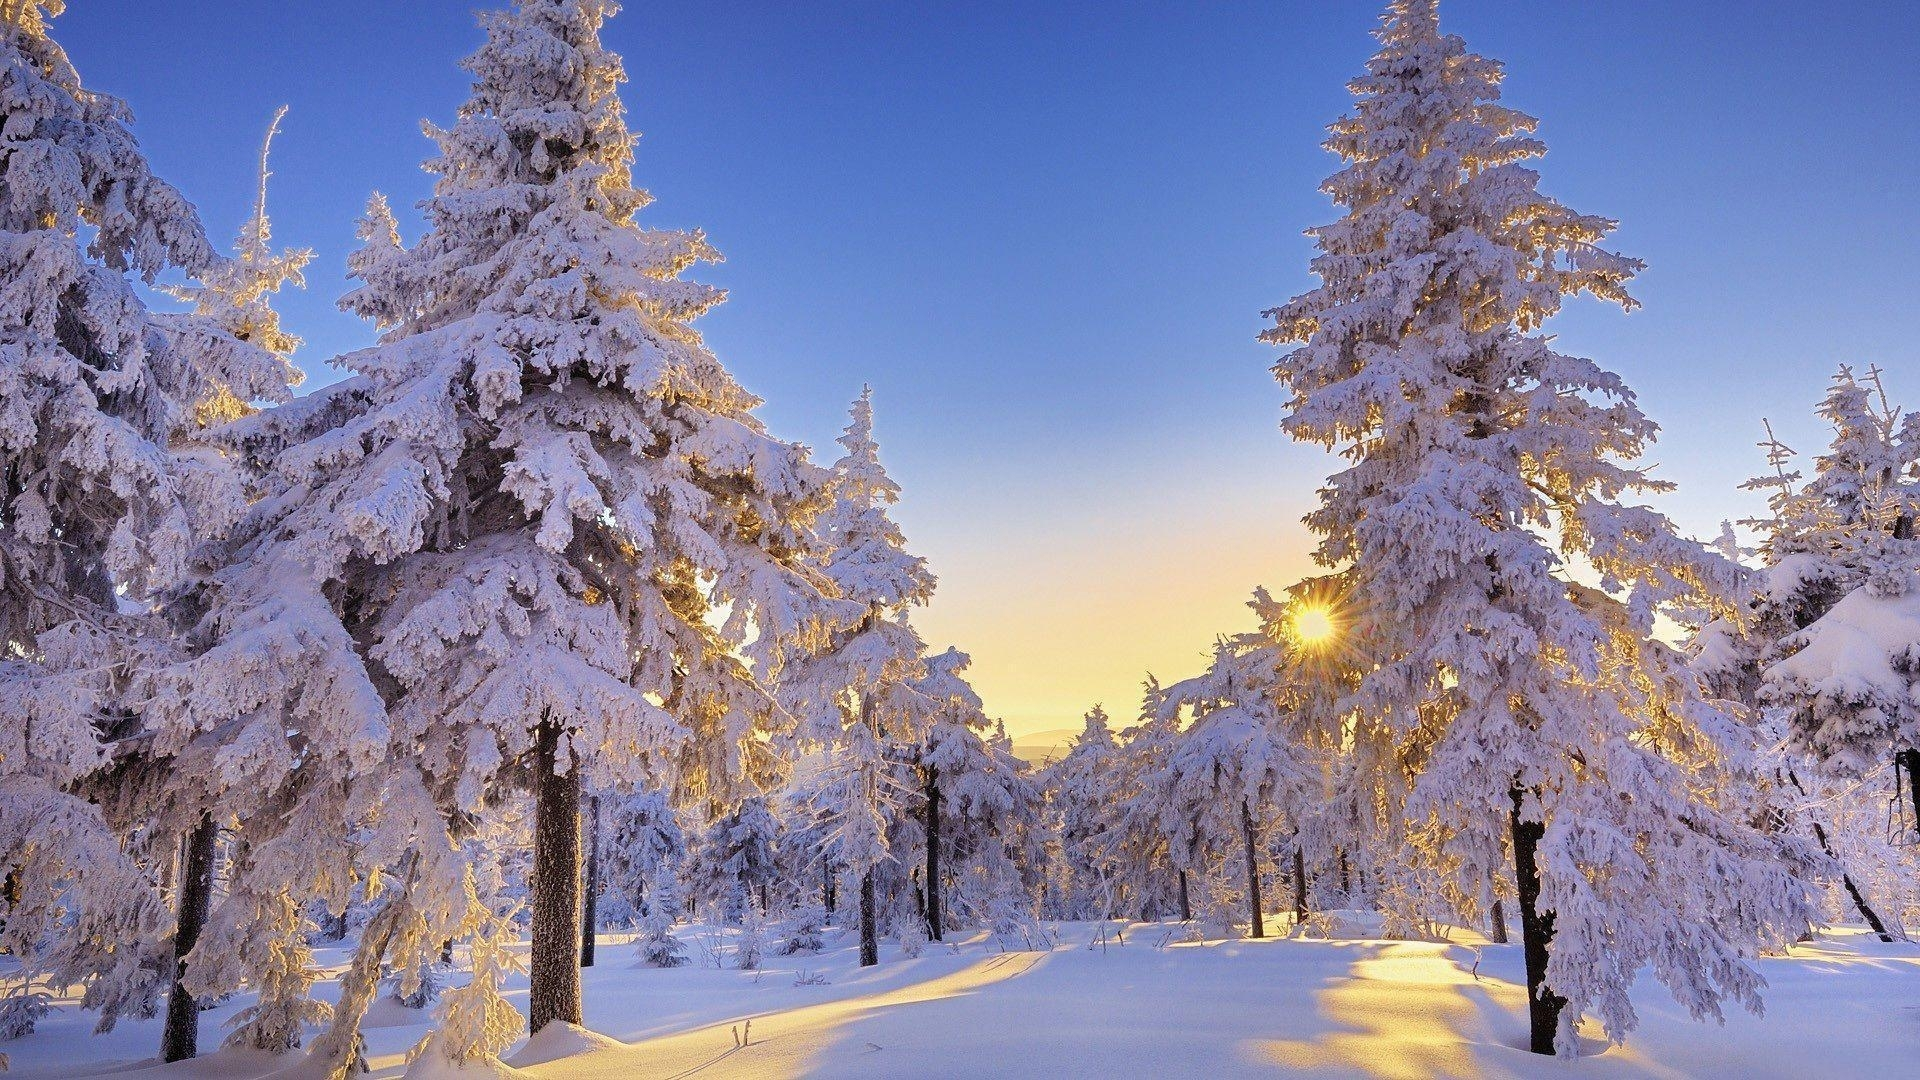 winter wonderland desktop backgrounds - wallpaper cave